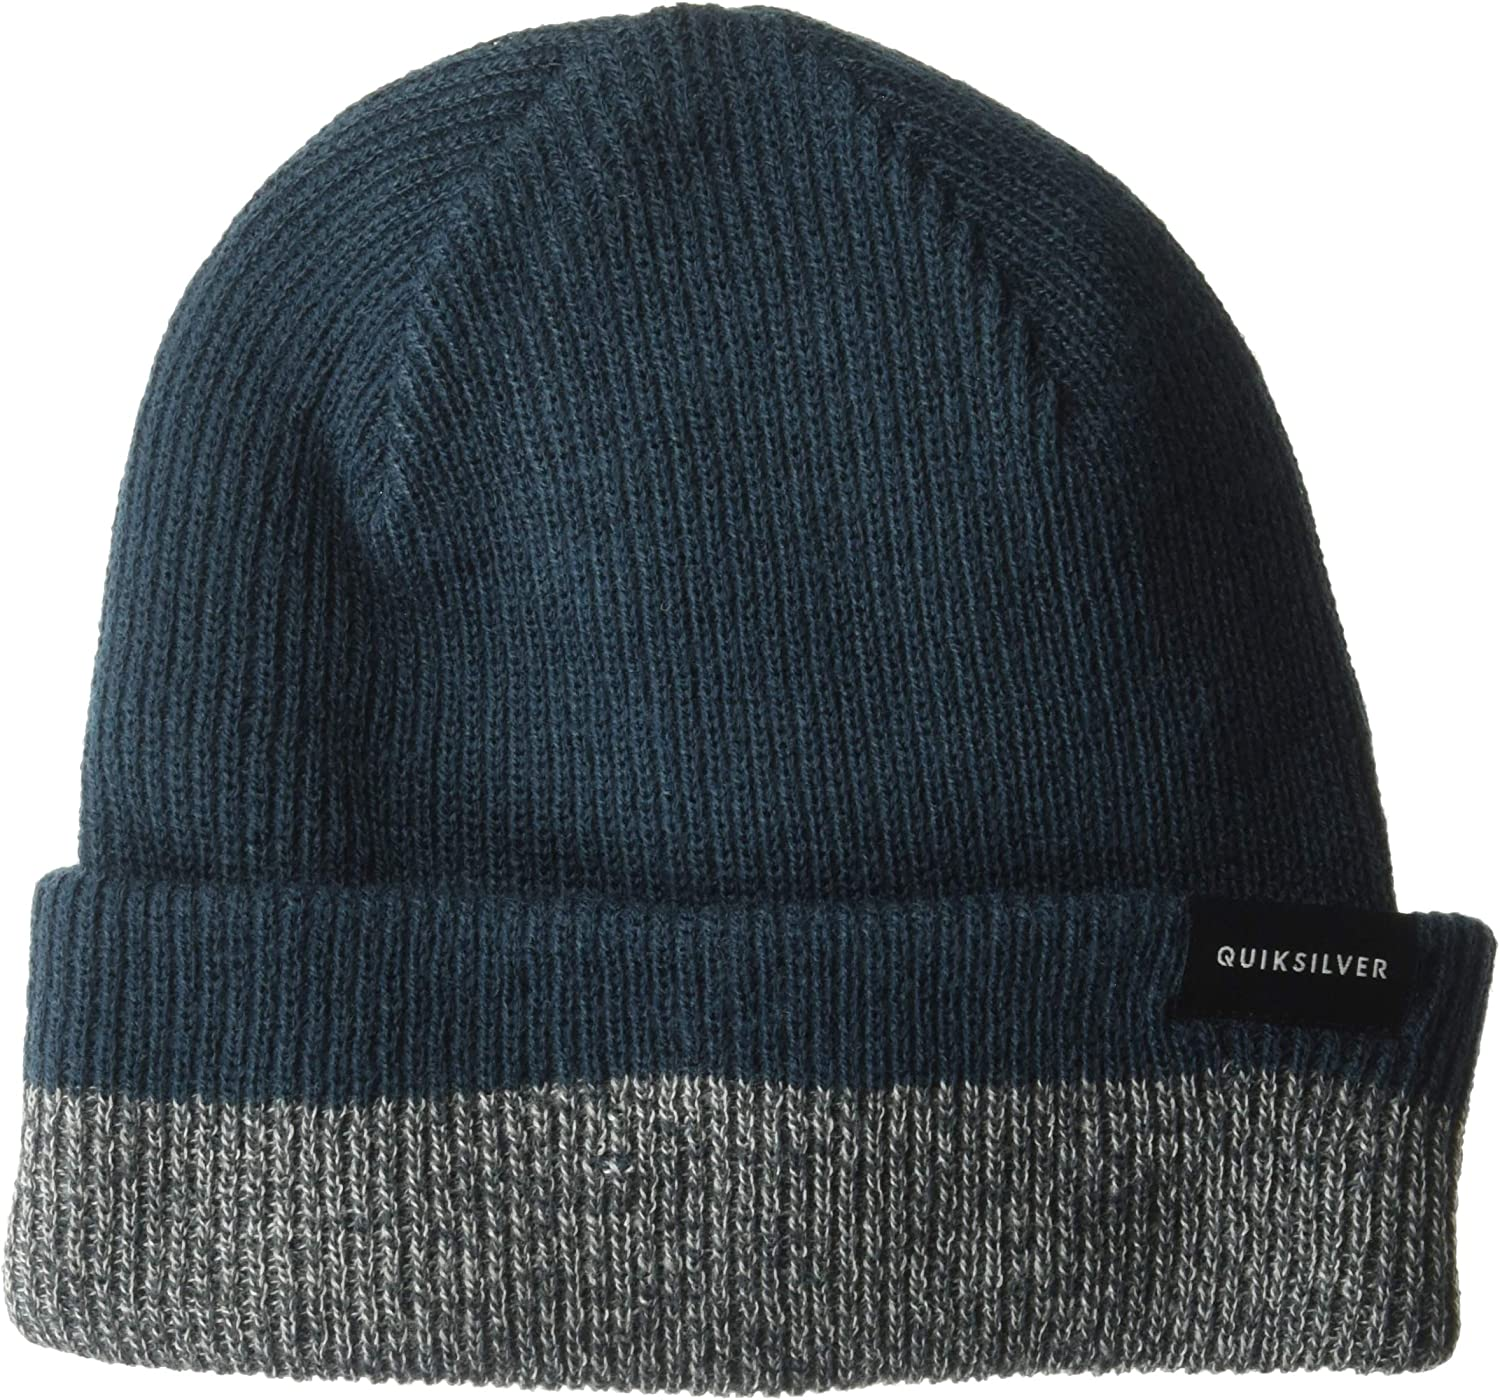 Quiksilver Mens Performed Color Block 2 Beanie